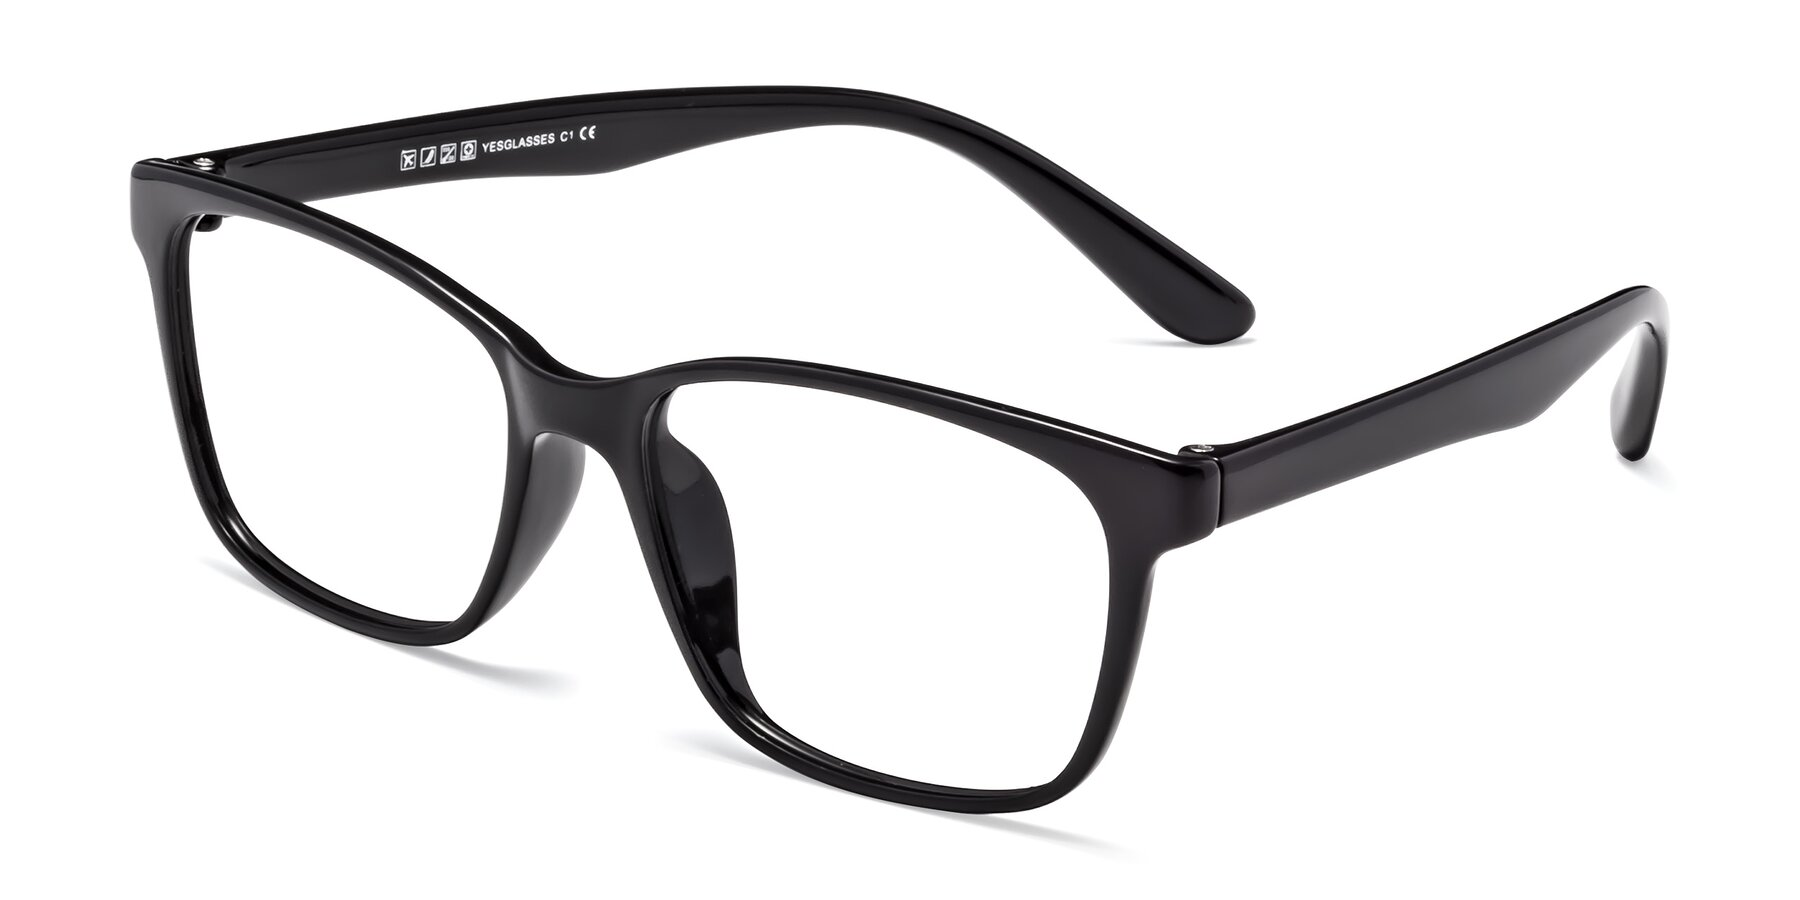 Angle of 8206 in Black with Clear Blue Light Blocking Lenses